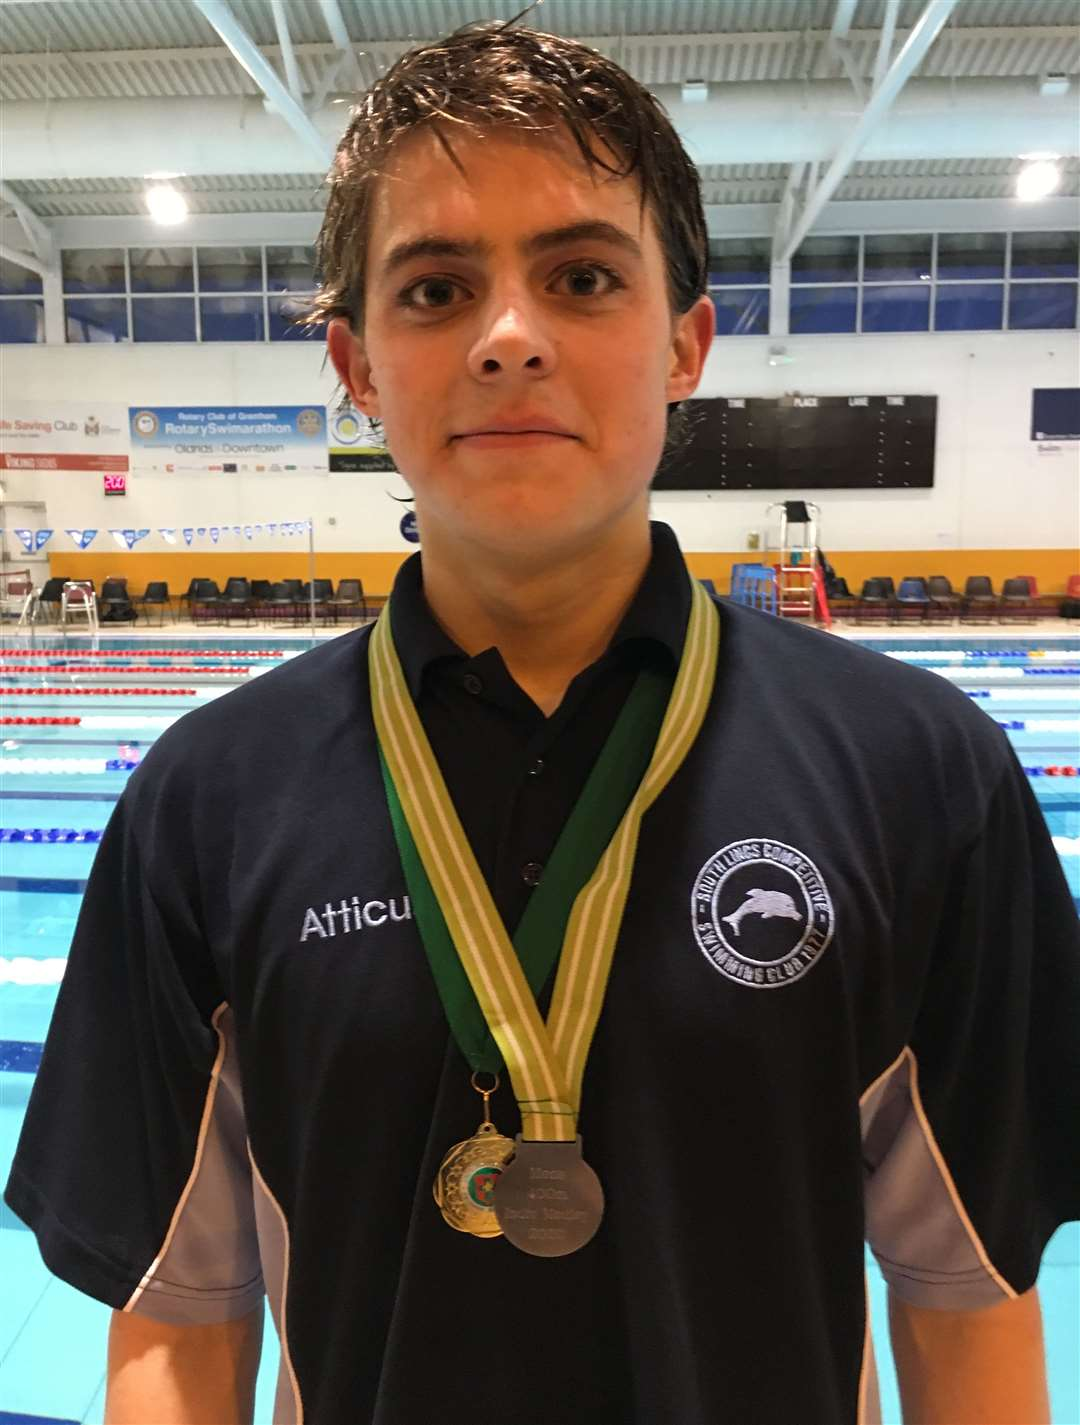 South Lincs Competitive Swimming Club medallist Atticus Strickland.Photo supplied.